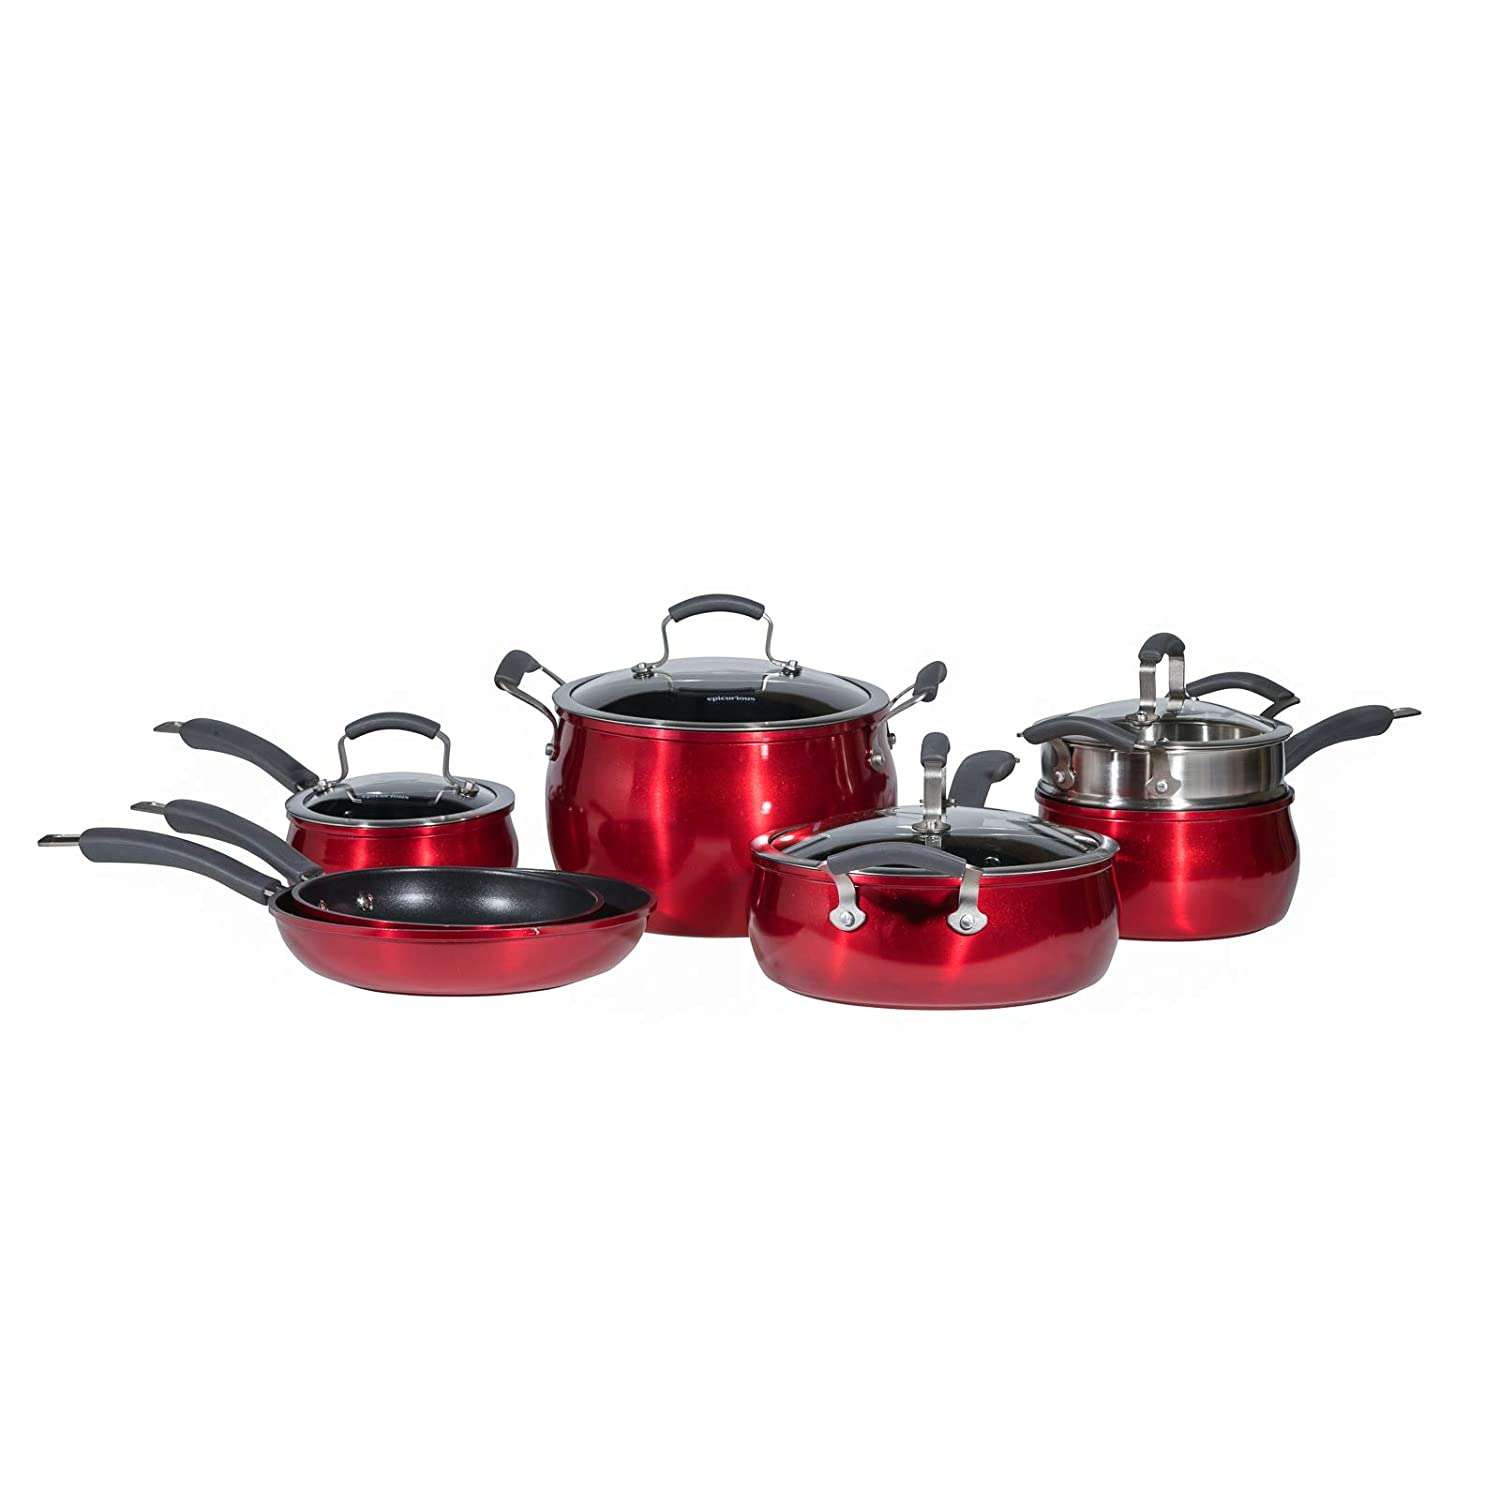 Epicurious 11-pc. Aluminum Nonstick Cookware Set in Red